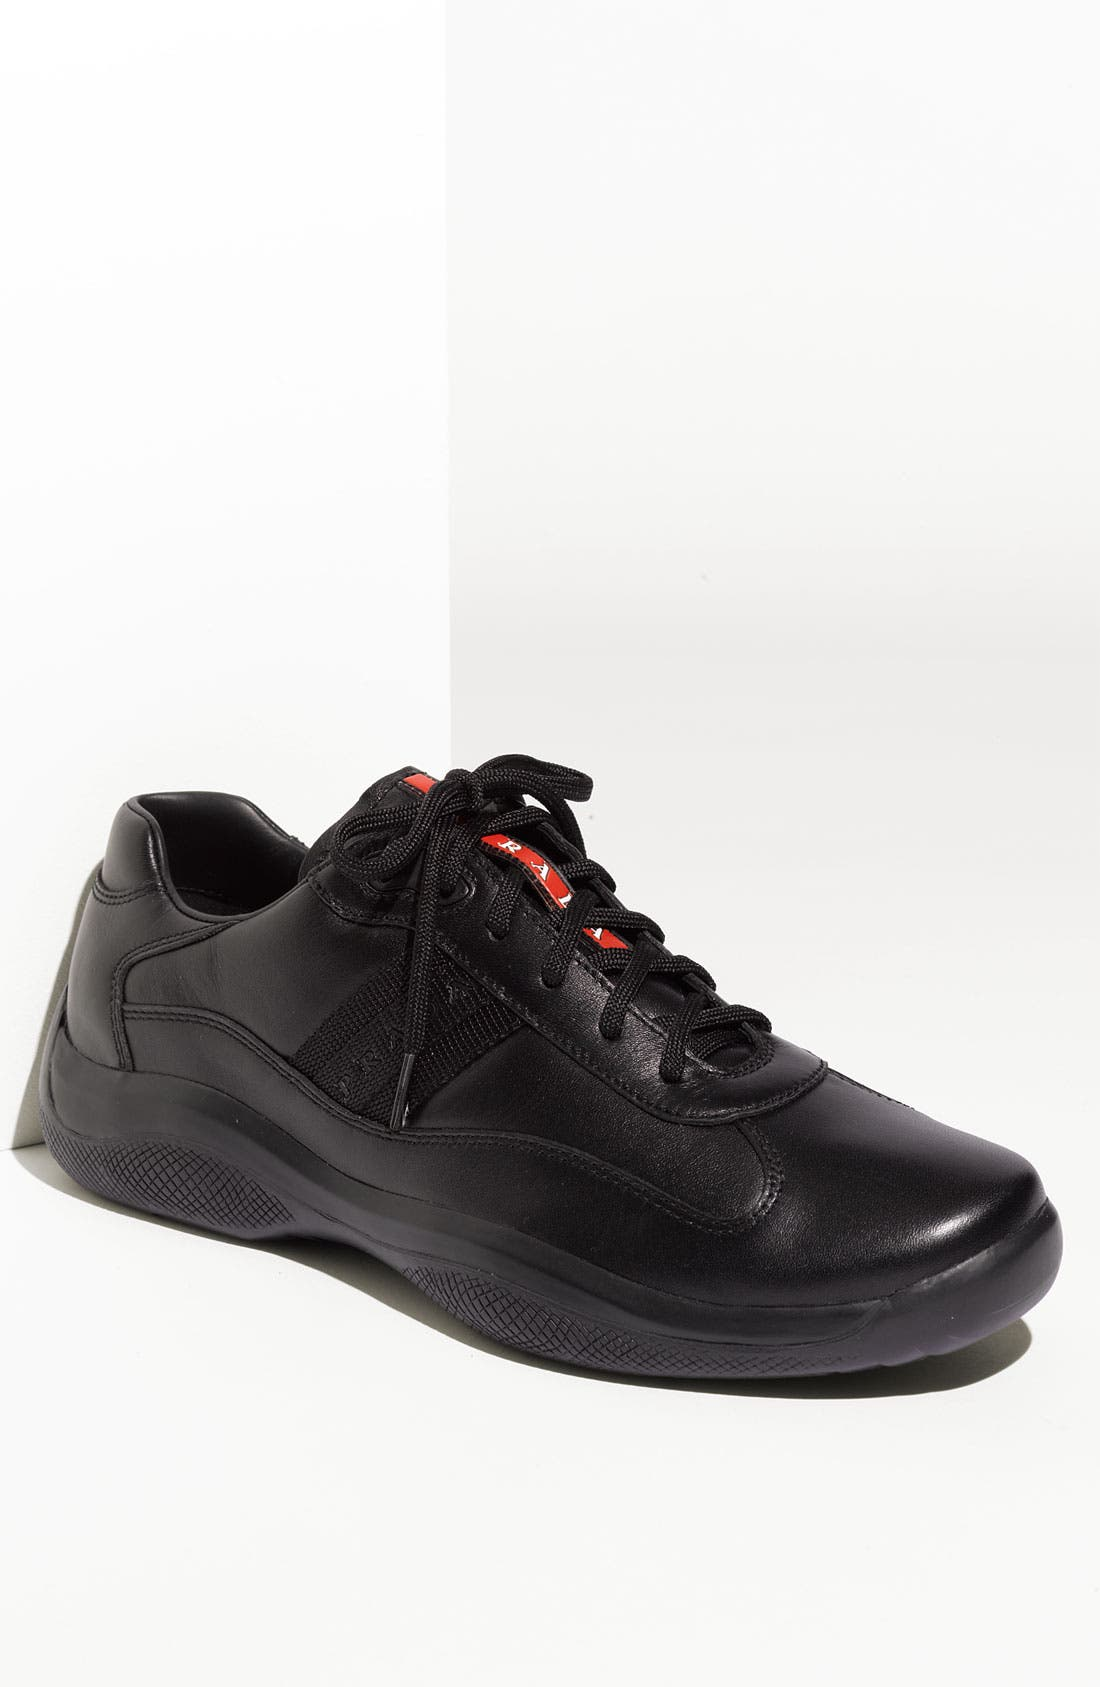 Alternate Image 1 Selected - Prada 'Eagle' Lace-Up Sneaker (Men)